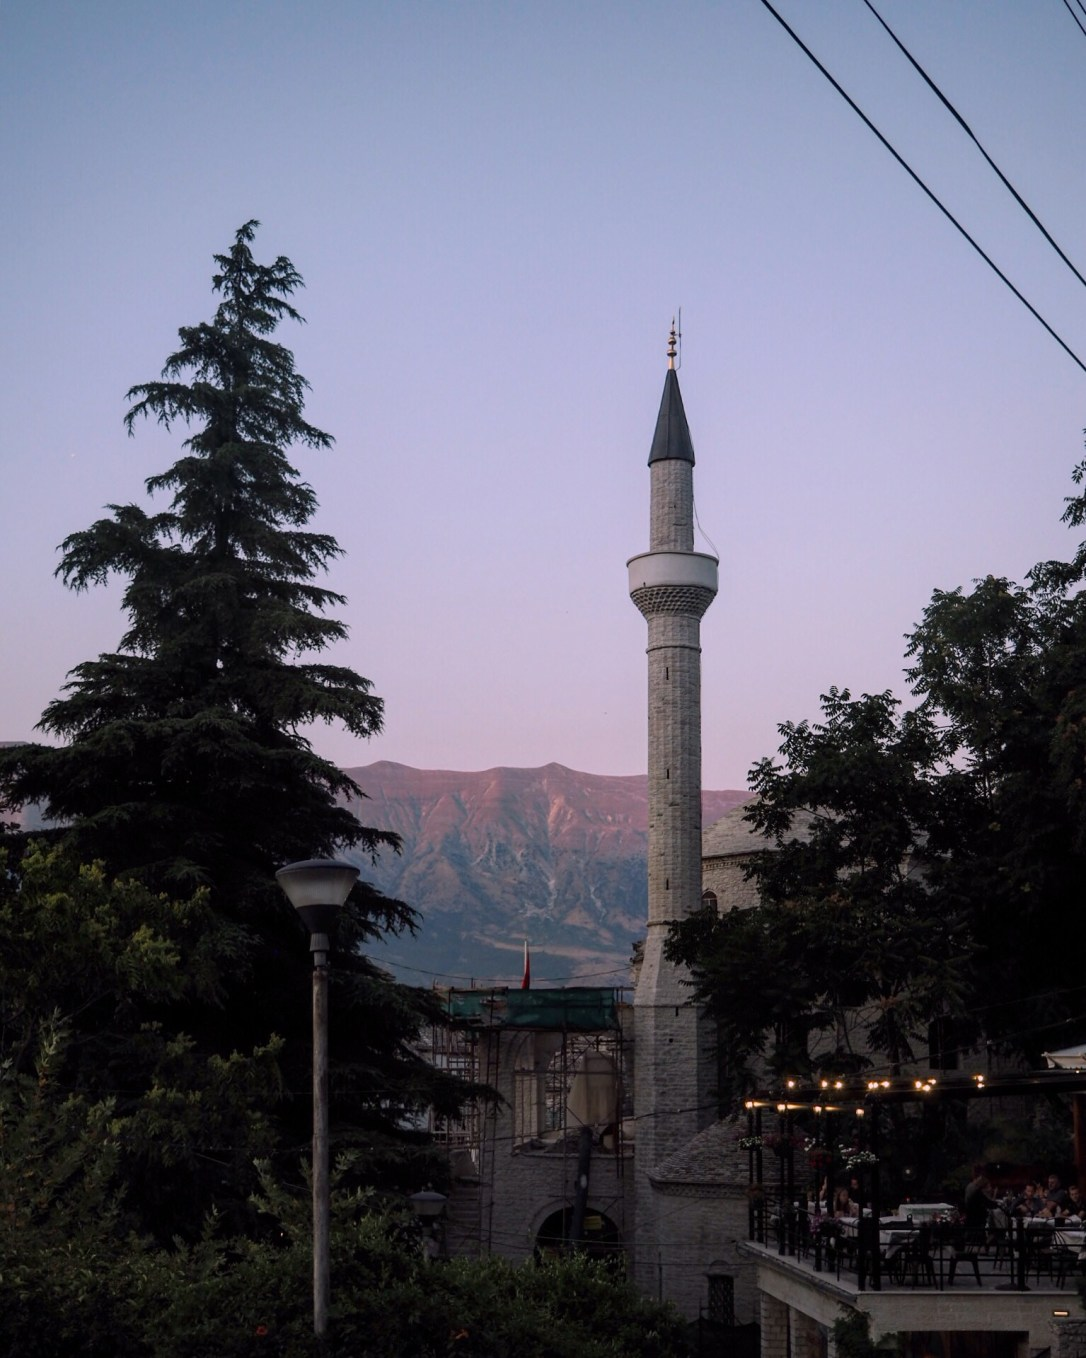 Mosque in Albania at sunset